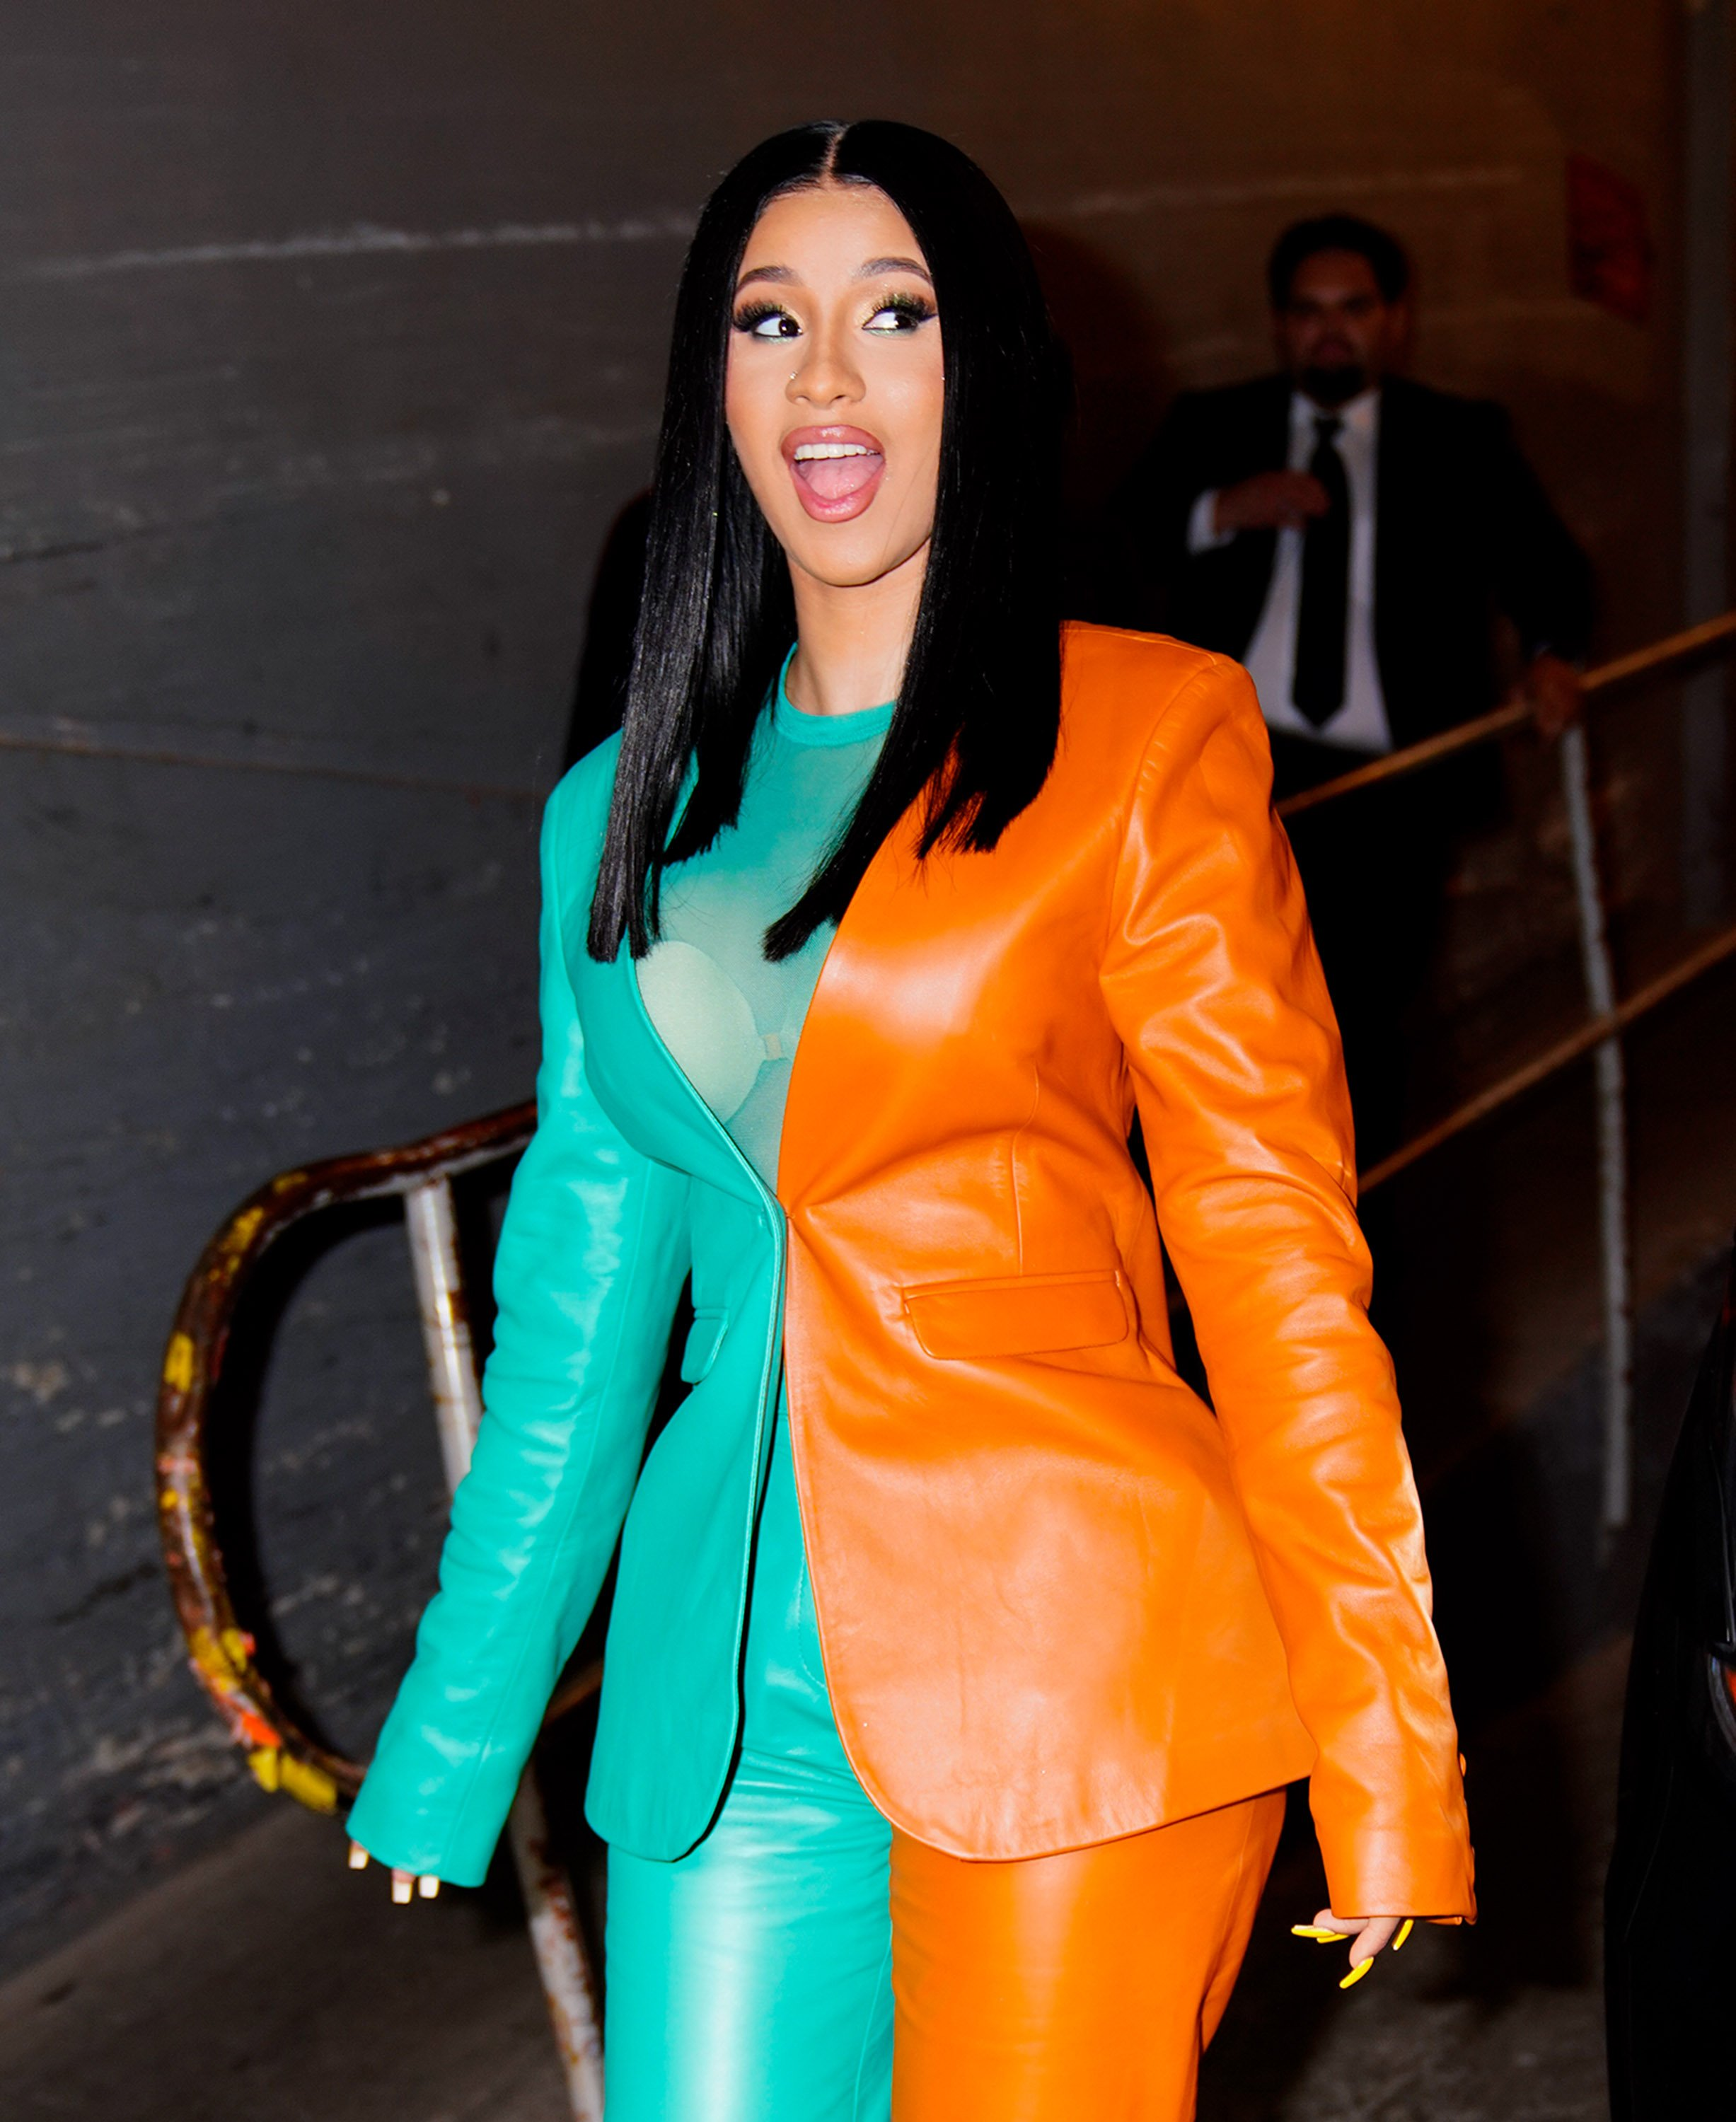 Cardi B attends a Vogue event on October 10, 2019 in New York City.| Source: Getty Images